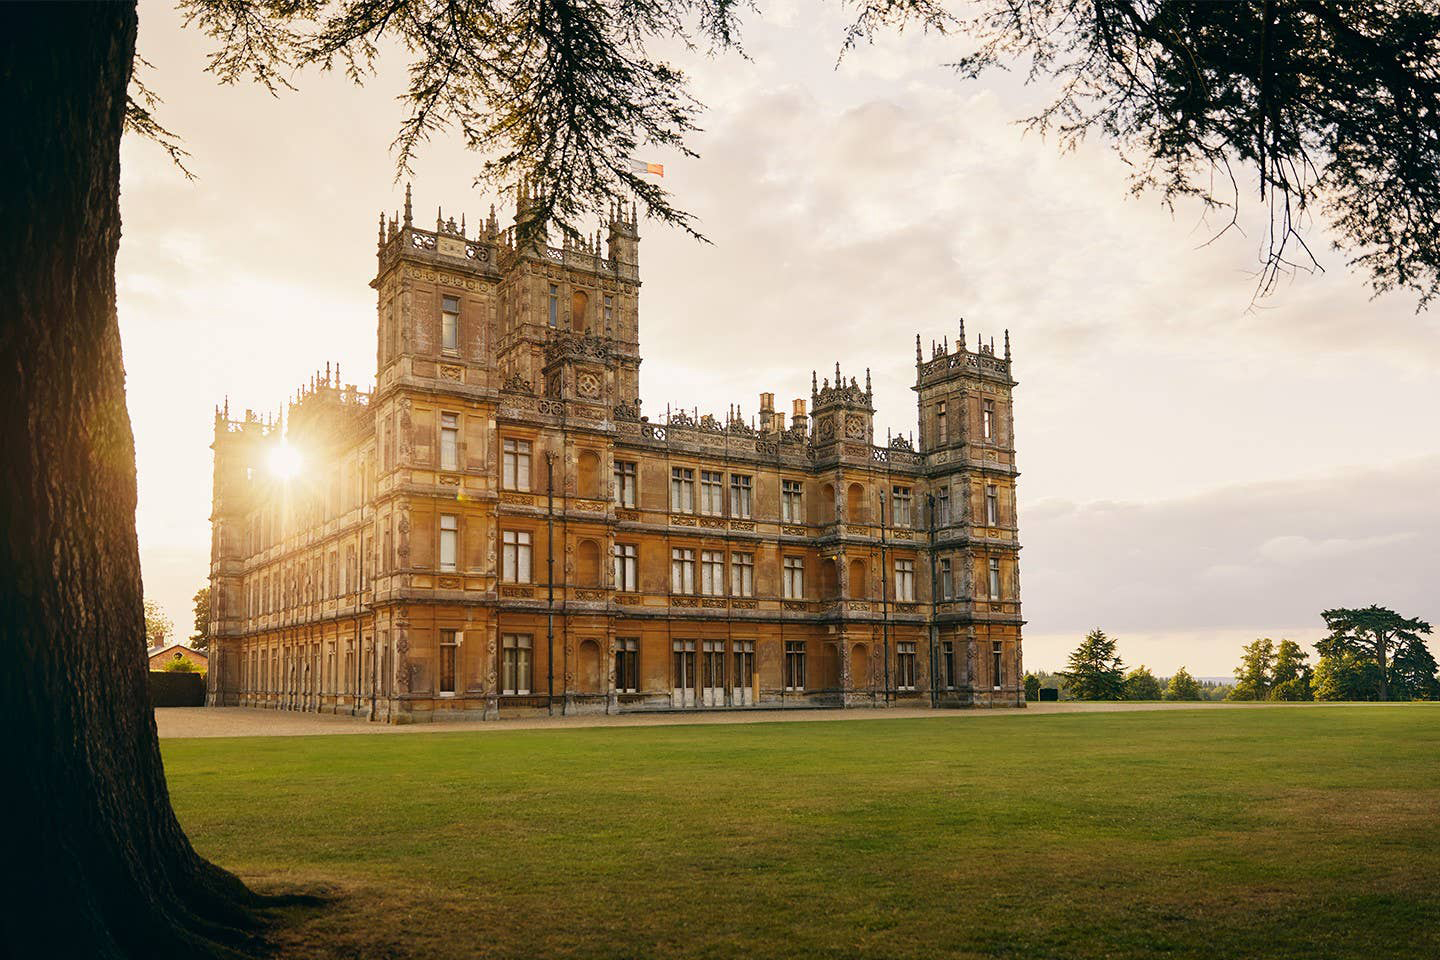 Airbnb: Spend the night at Downton Abbey